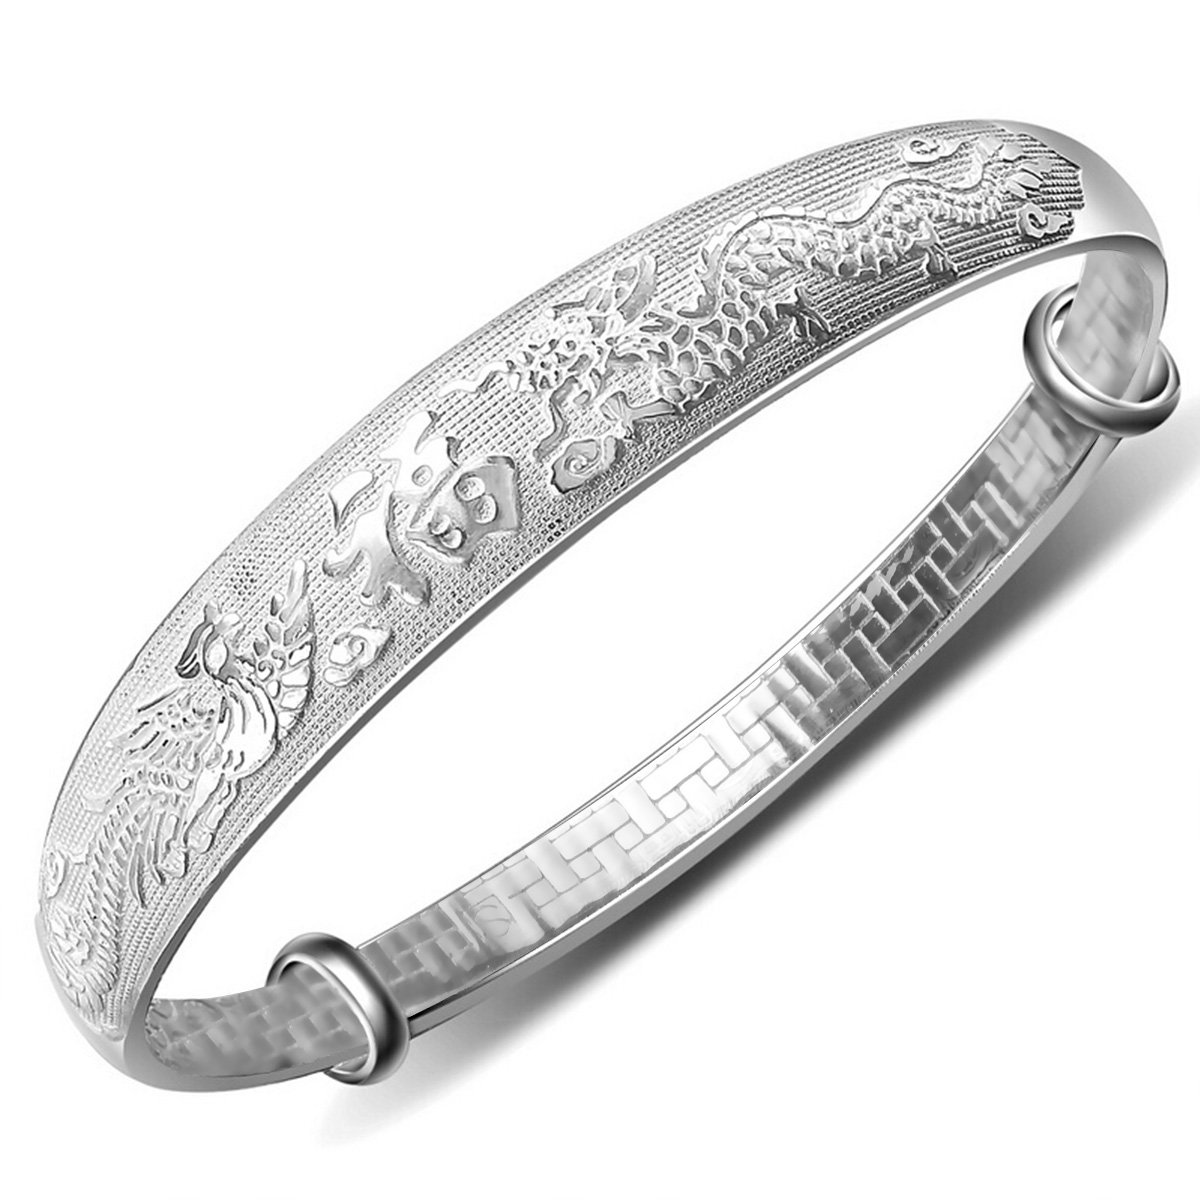 Merdia Women's 999 Solid Sterling Silver Chinese Dragon Phoenix Carved Adjustable Bangle Bracelet 27g Weight for Women,Ladies and Elder.